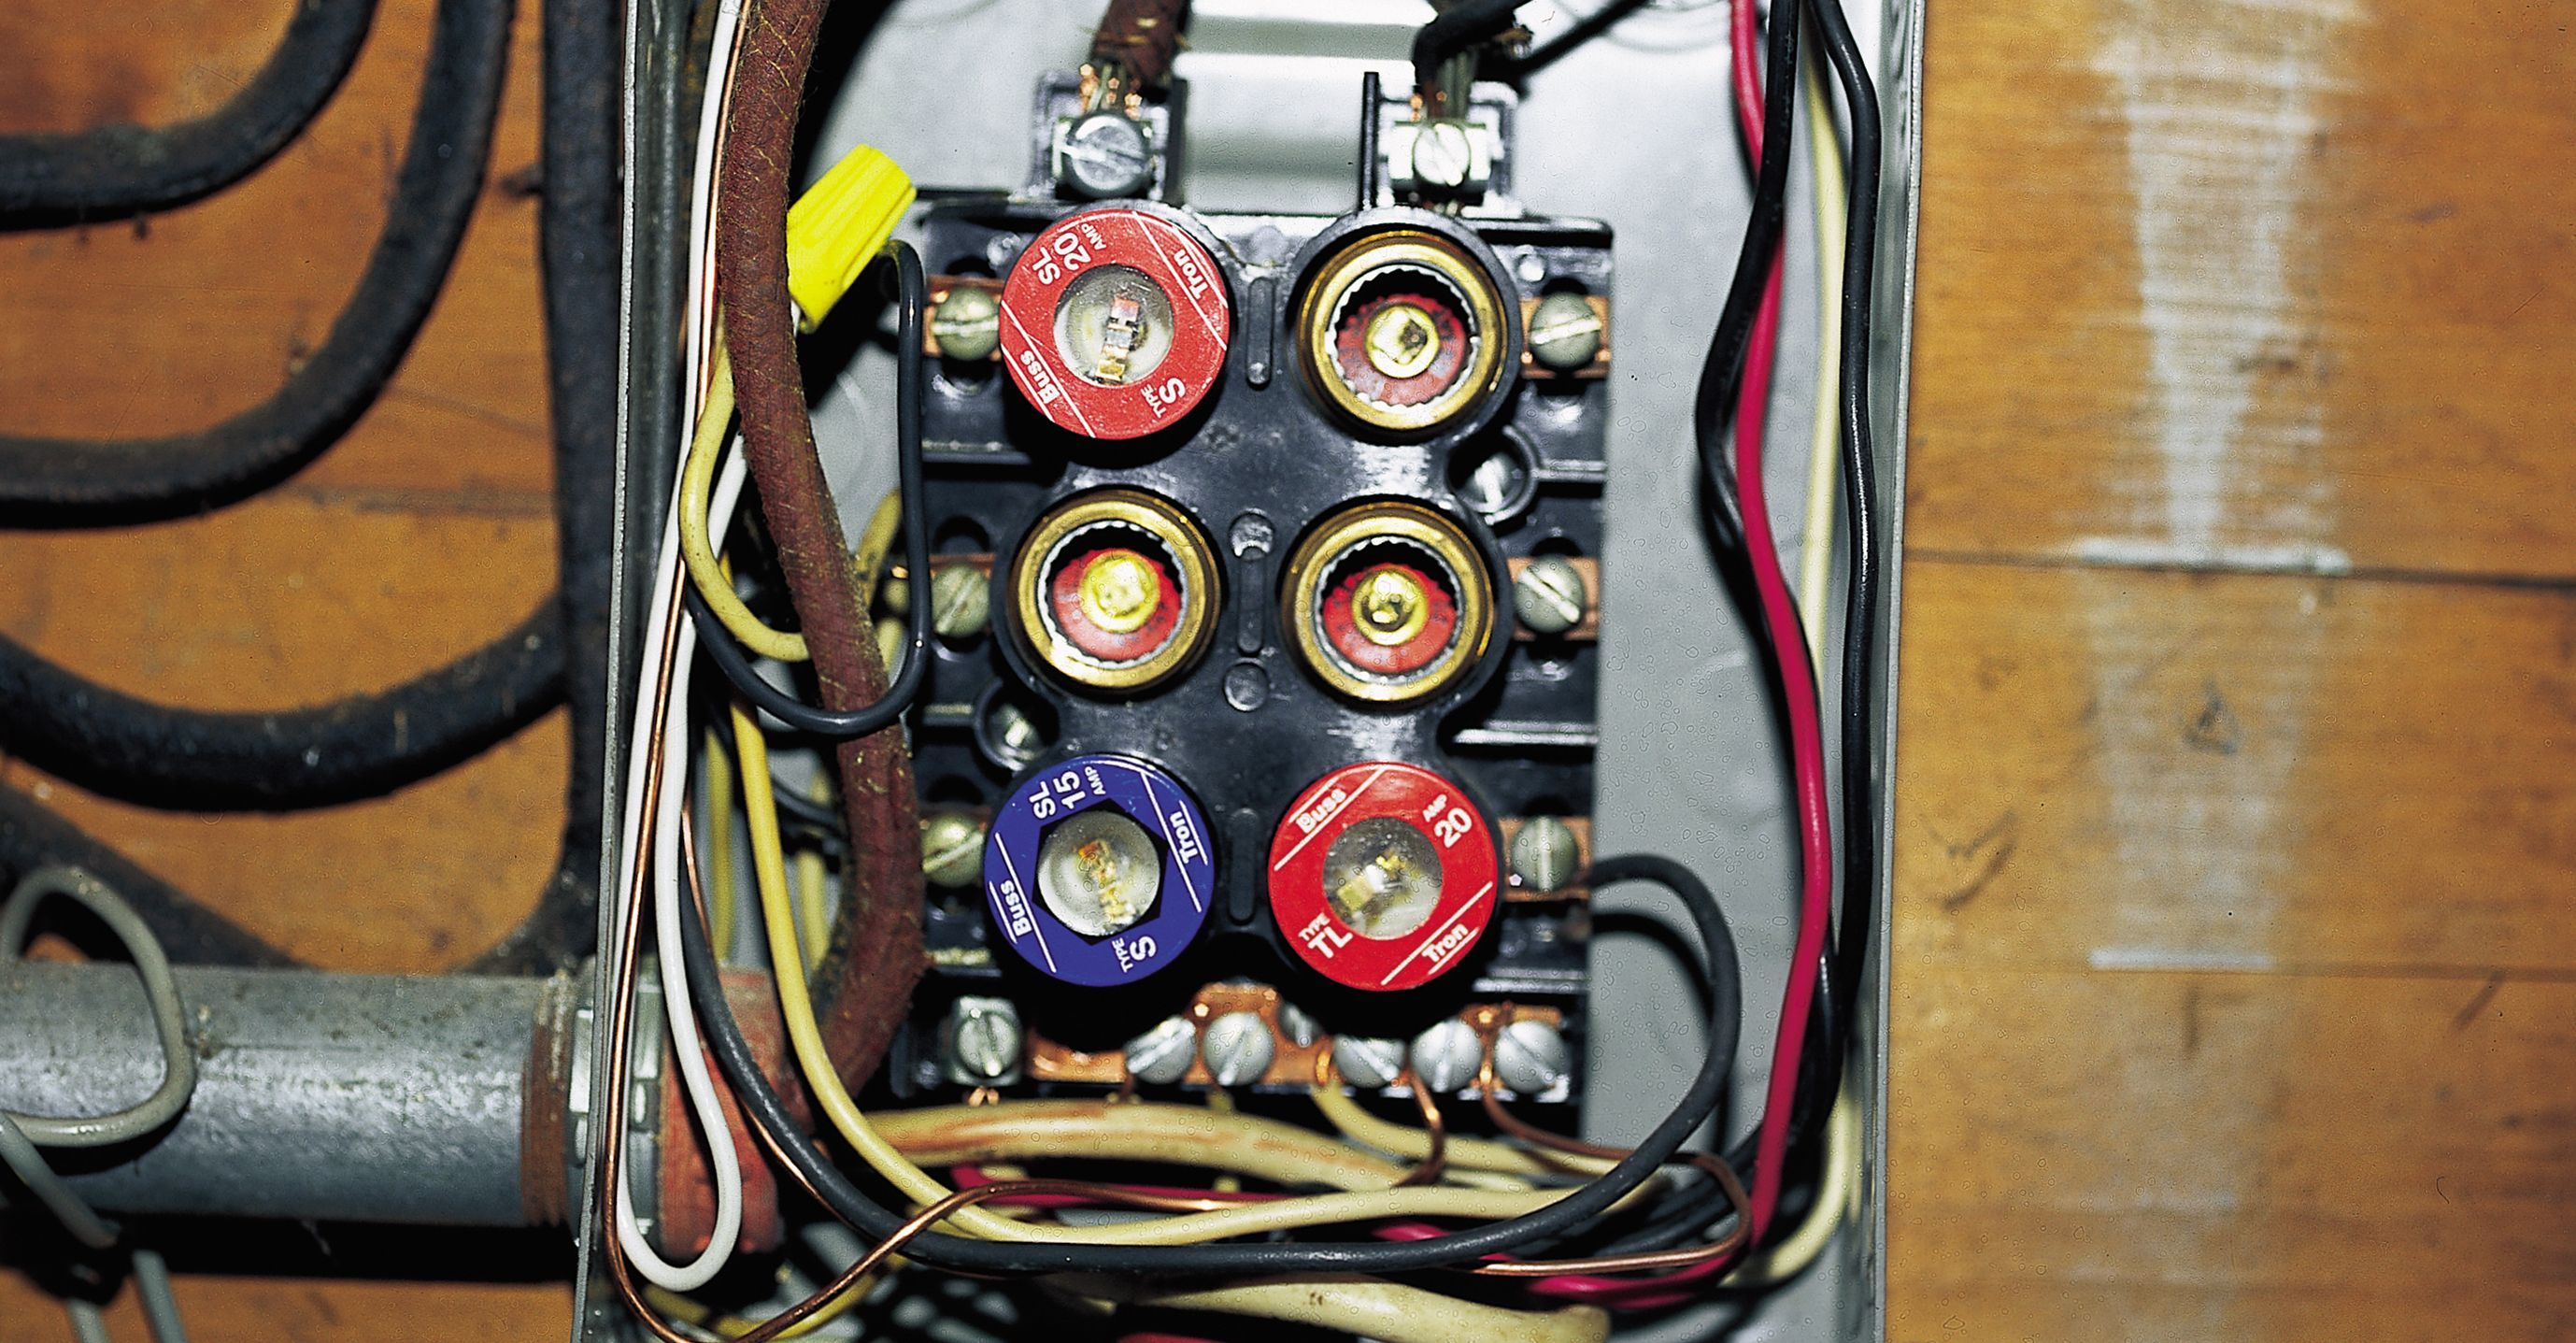 Old House Wiring Problems - Home Wiring Diagrams on